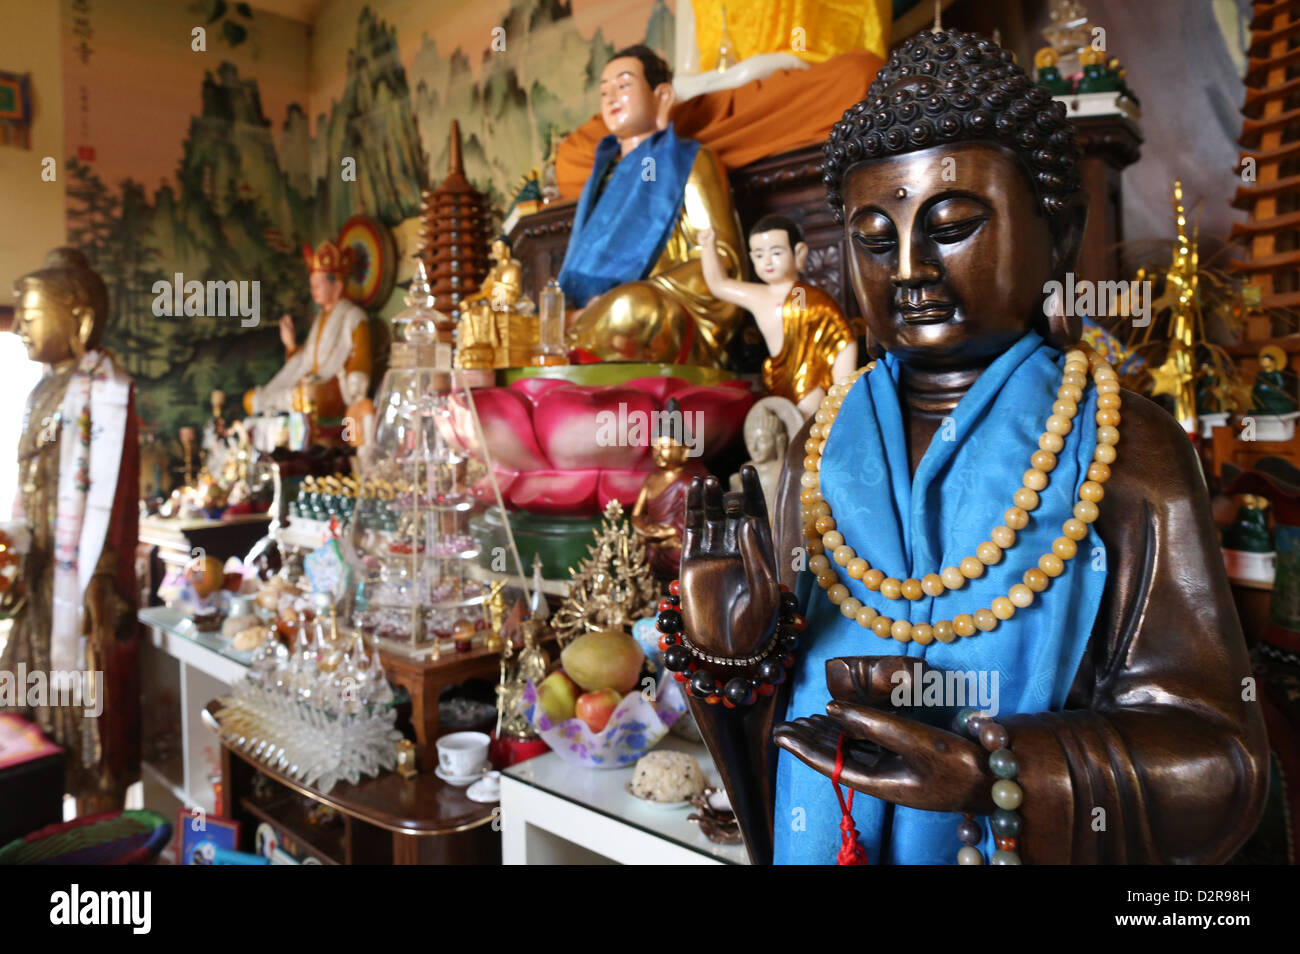 Buddha statue in Tu An Buddhist temple, Saint-Pierre-en-Faucigny, Haute-Savoie, France, Europe - Stock Image